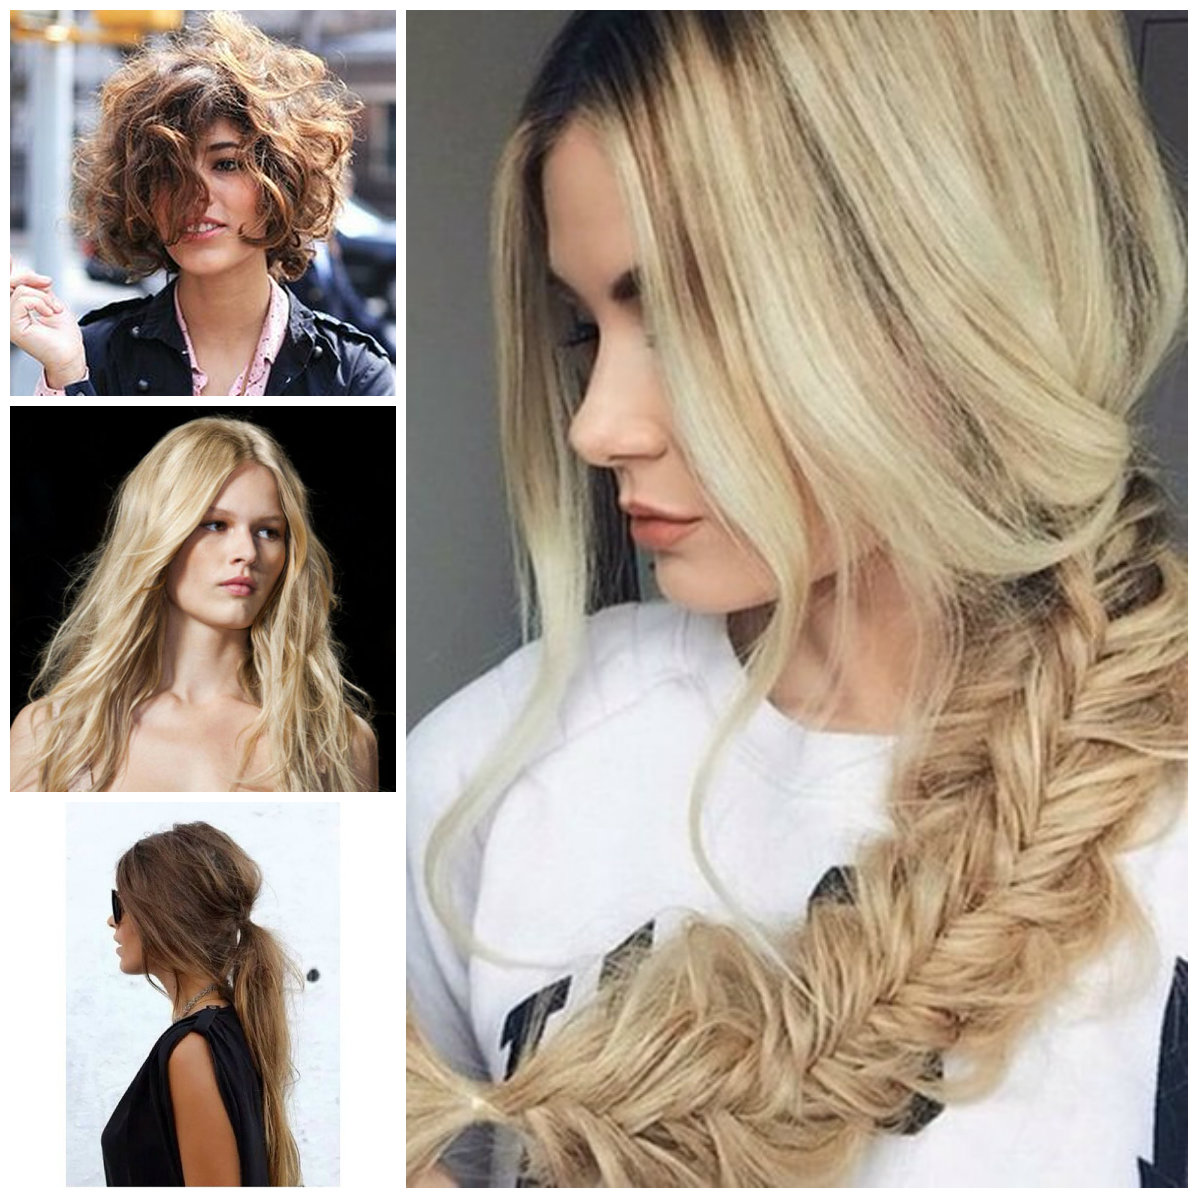 """Messy hairstyle ideas for girls """"width ="""" 500 """"height ="""" 500 """"data-jpibfi-post-excerpt ="""" """"data-jpibfi-post-url ="""" http://www.frisuren-2018.com/chaotic-frisur -ideas-for-girls / """"data-jpibfi-post-title ="""" Messy hairstyle ideas for girls """"data-jpibfi-src ="""" http://www.frisuren-2018.com/wp-content/uploads/2019/ 05 / Chaotic-Hairstyle-Ideas-for-Girl.jpg """"/> Sometimes too lean cans are tiring and you want to try something crazy and energetic, so give your hair a day off from everyday, sleek, heavy updos, and try the following <strong>messy hairstyle ideas for girls</strong>,<span id="""